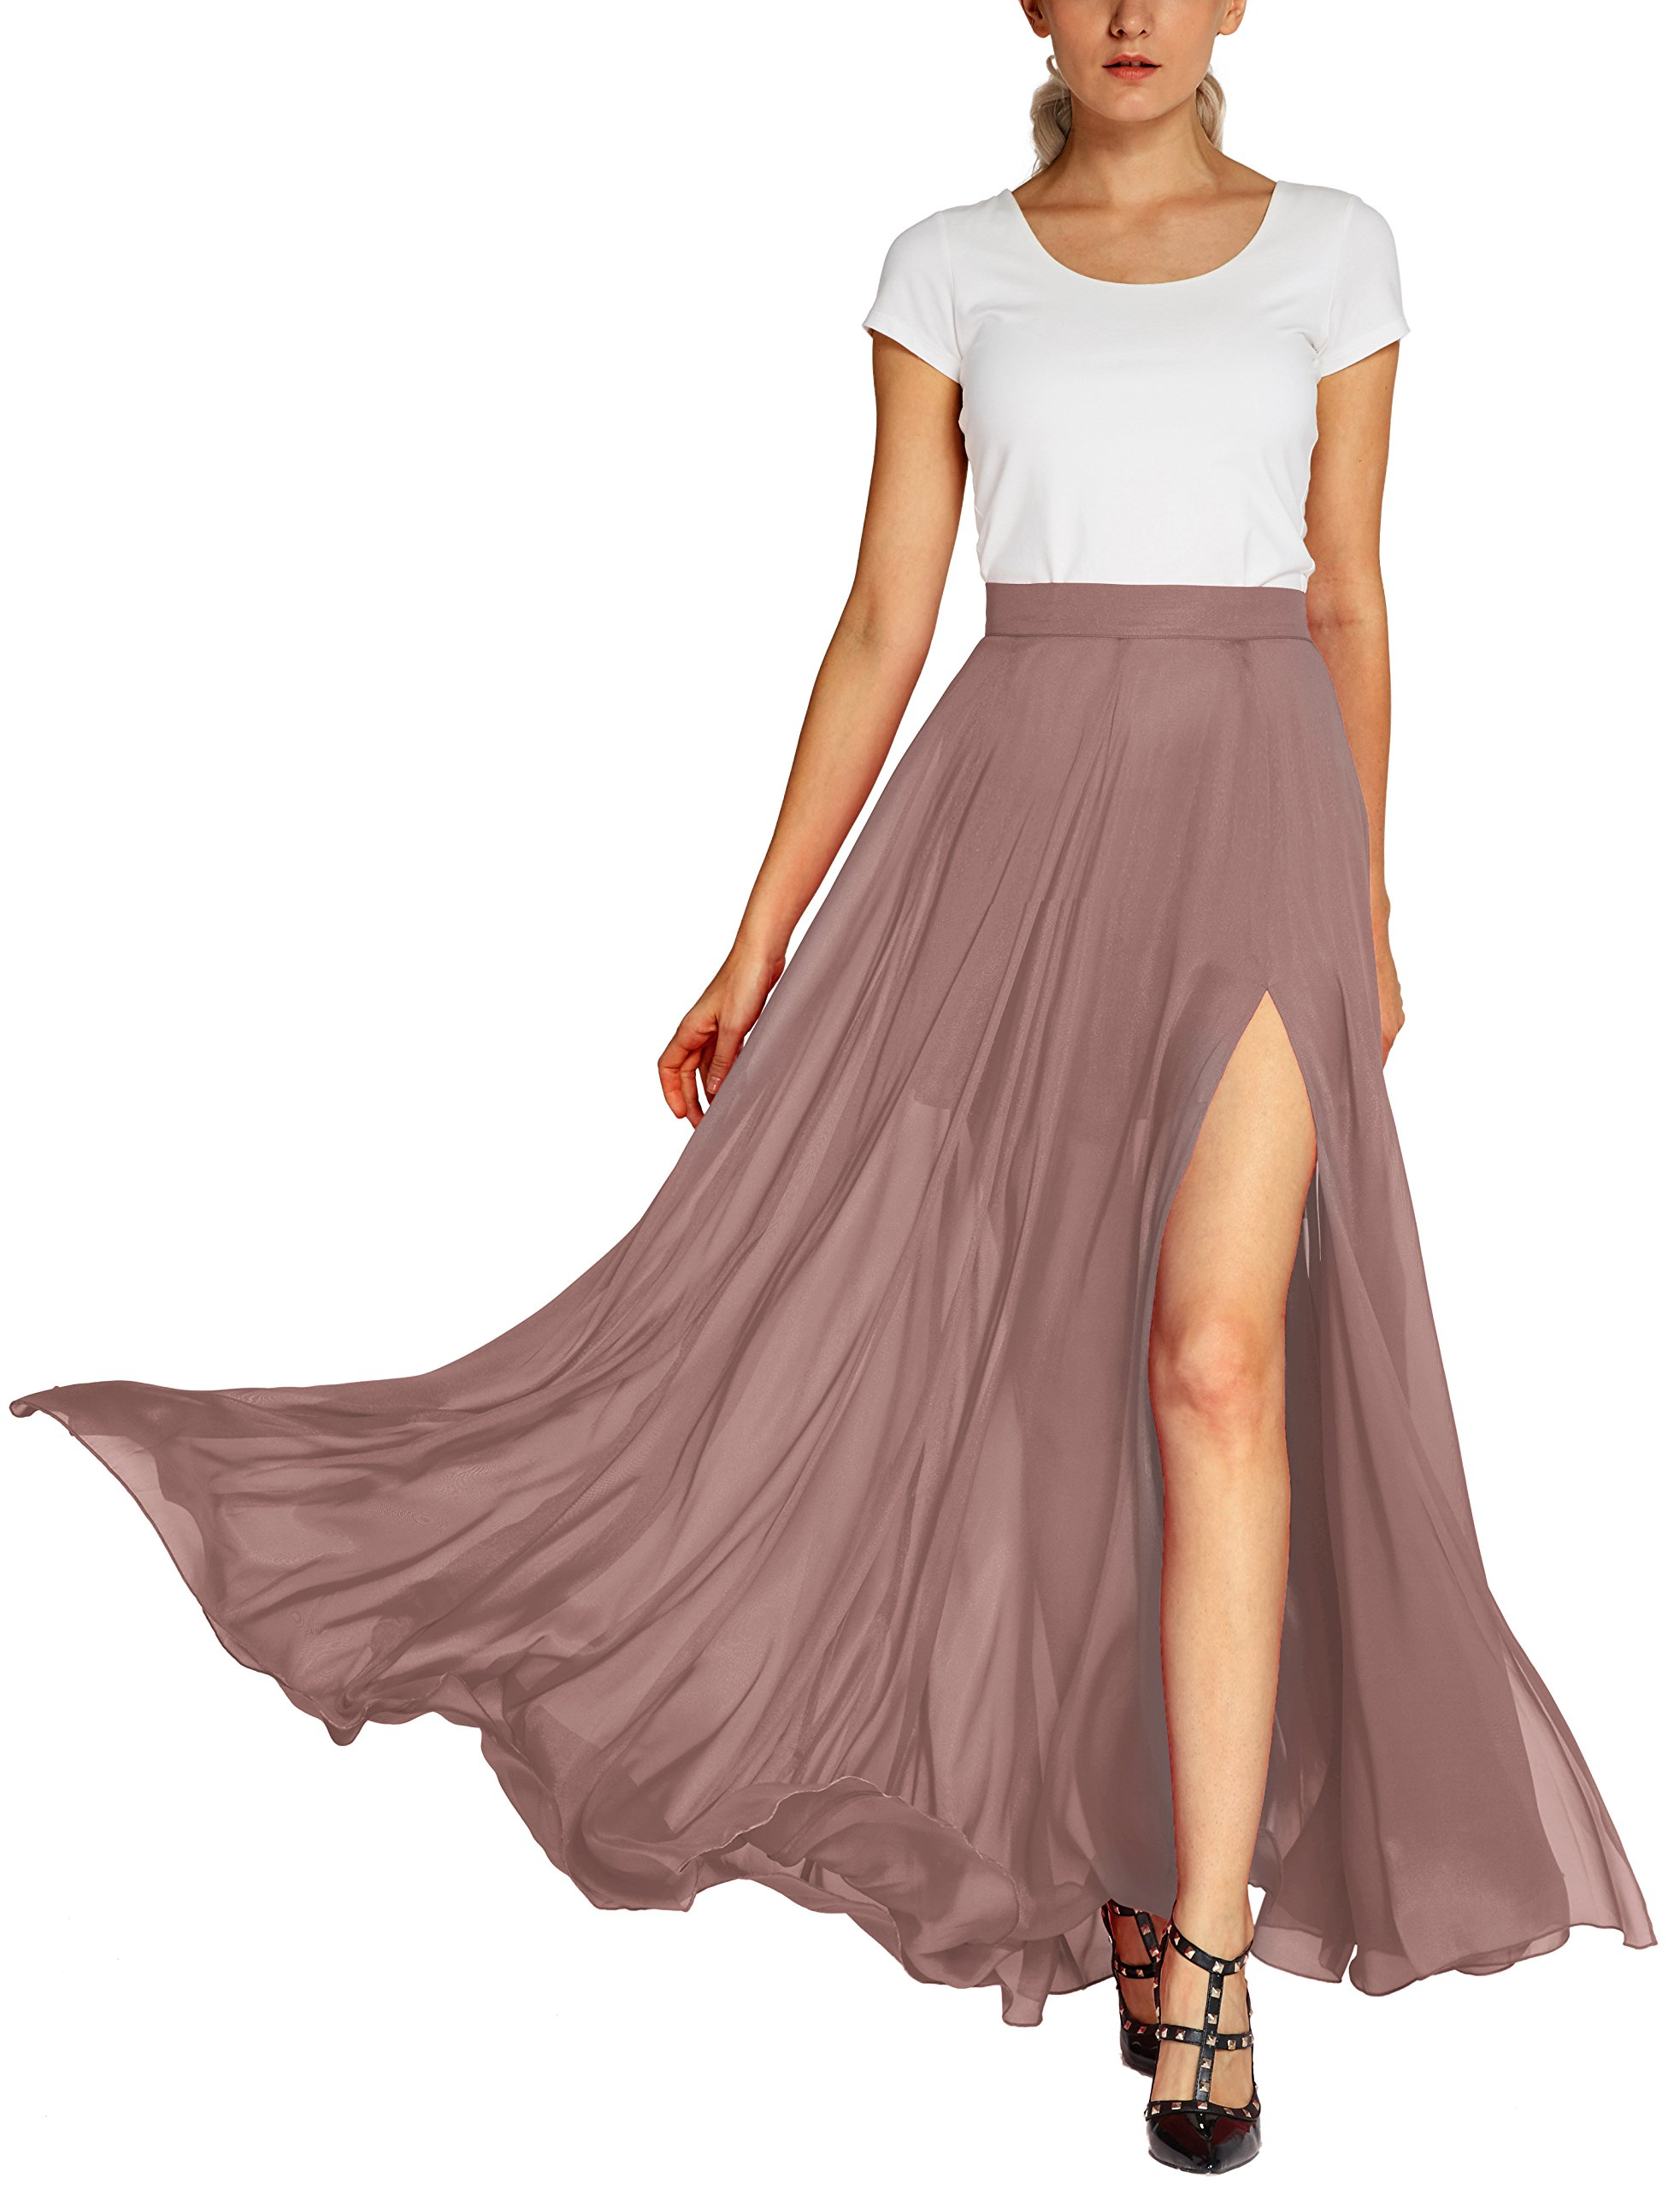 Urban CoCo Women's Fashion Solid Color Flowy Split Long Maxi Skirt (L, Nude Pink)